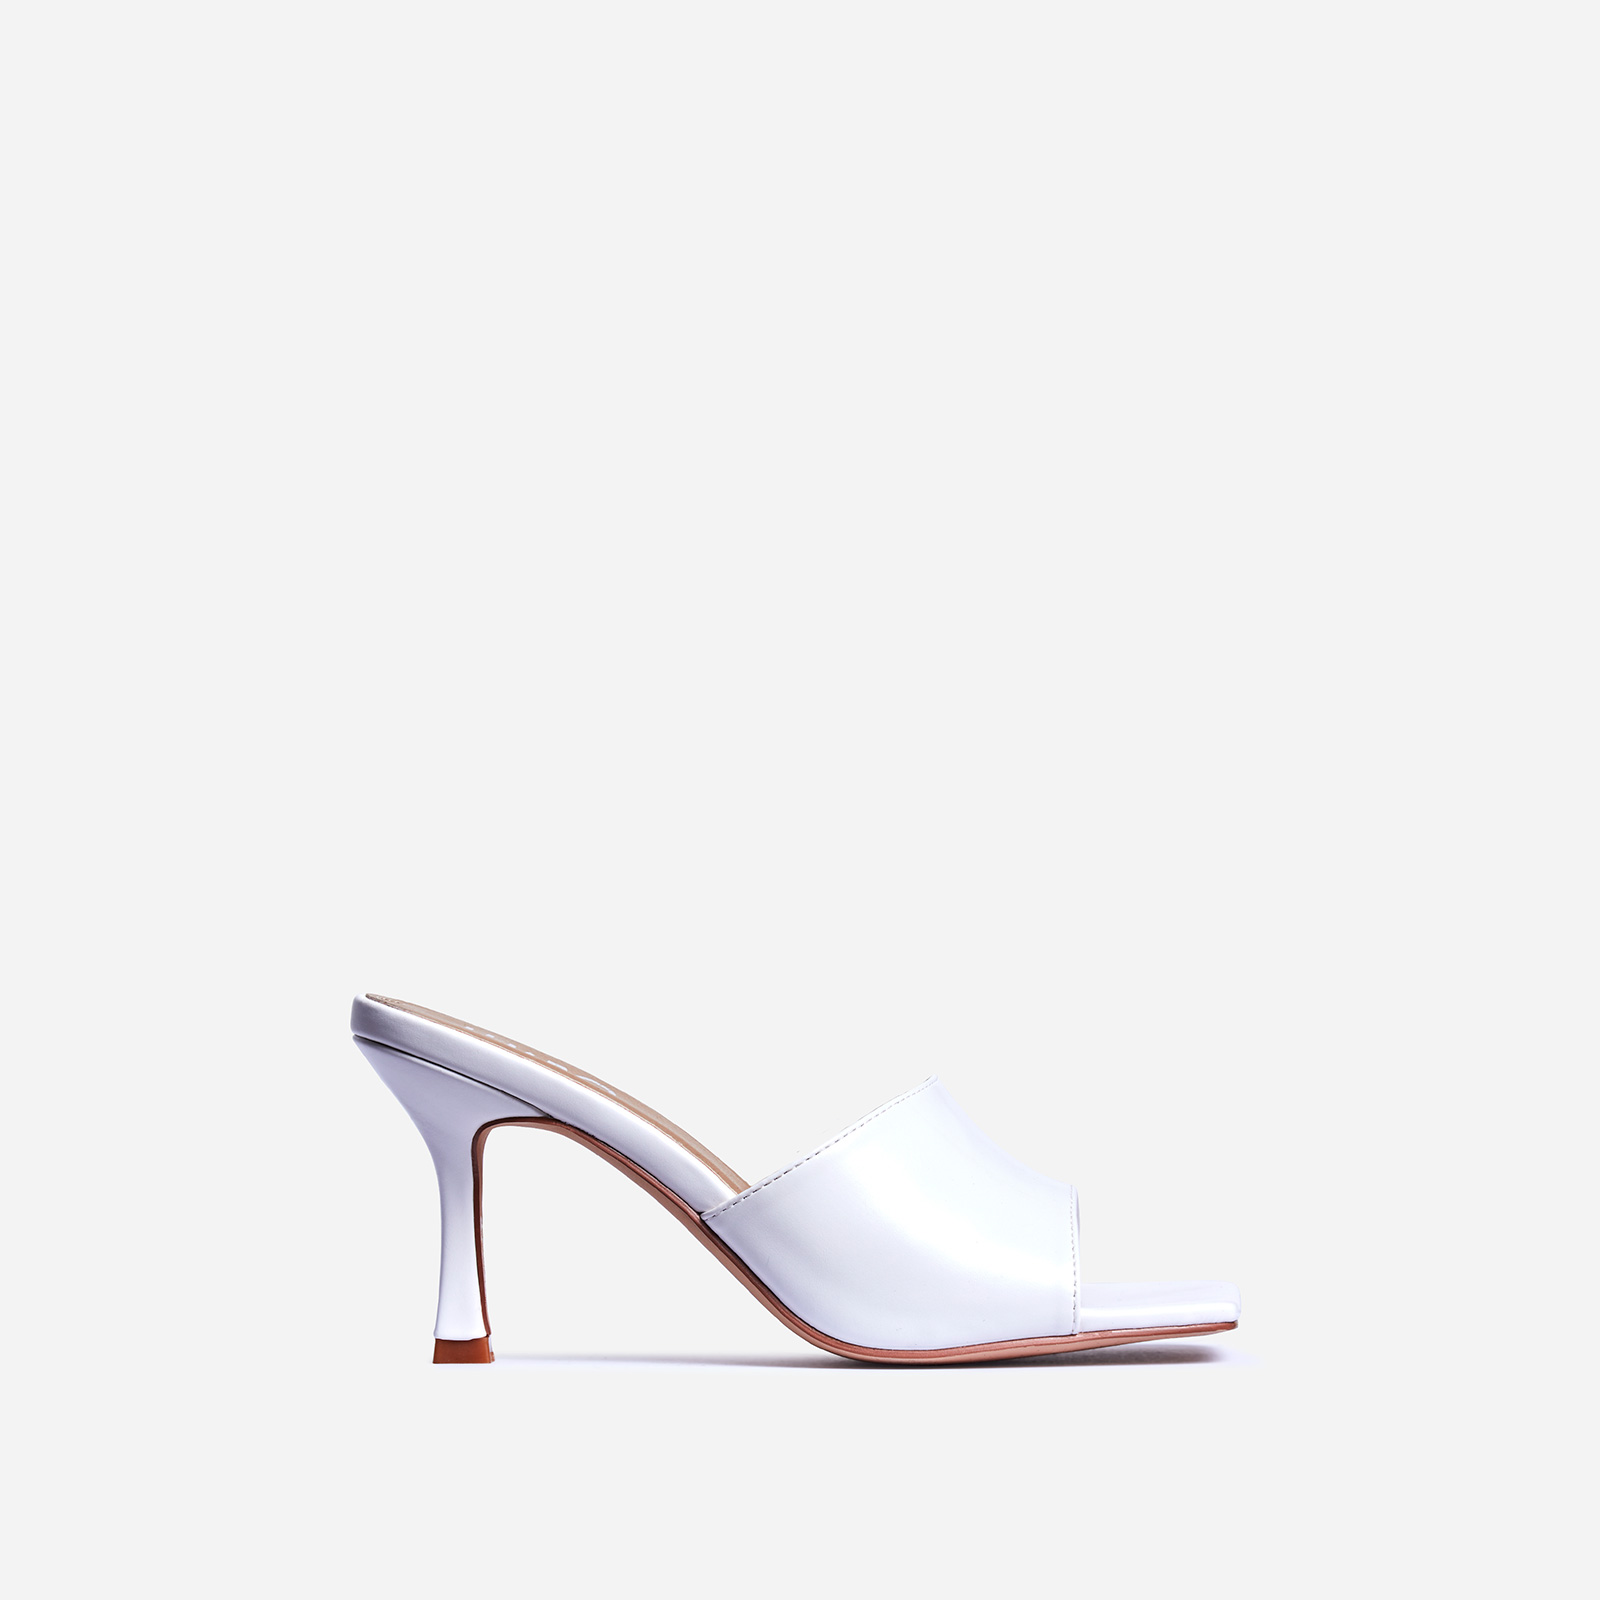 Hilton Square Peep Toe Kitten Heel Mule In White Faux Leather